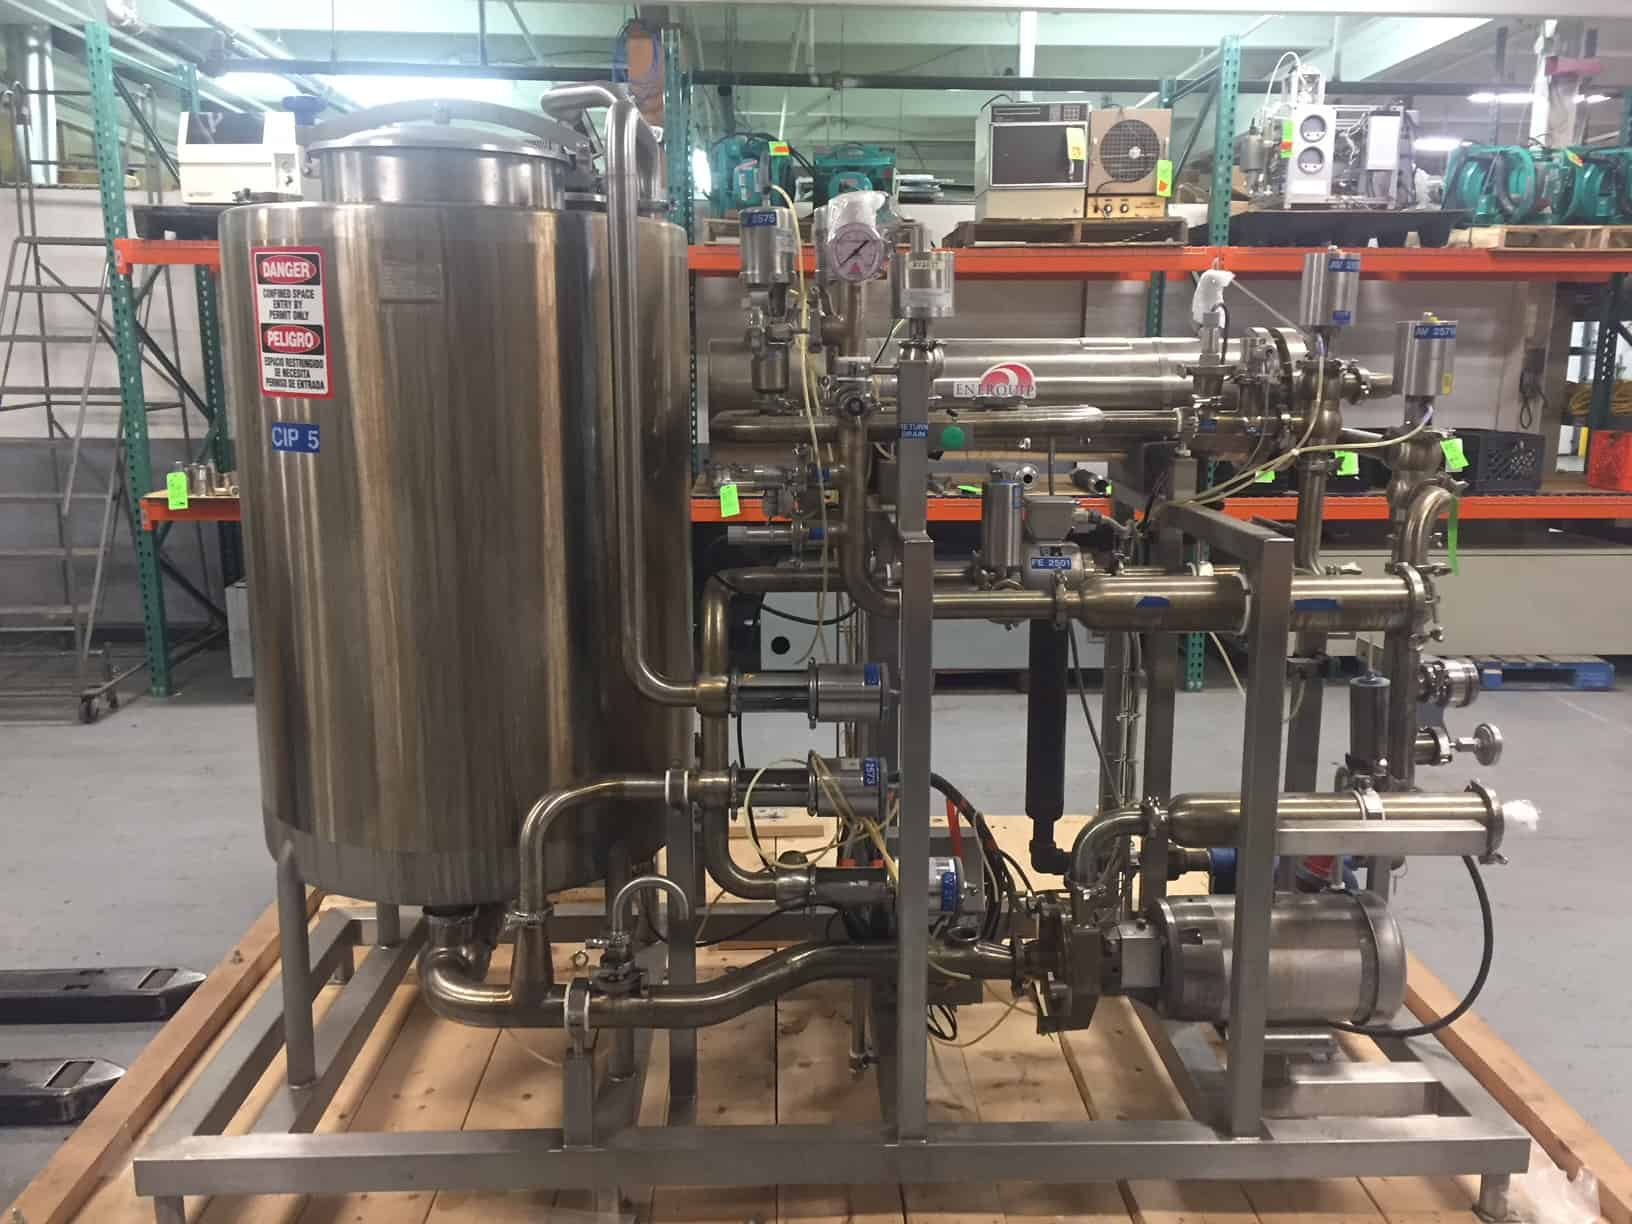 """Sani-Matic Skid Mounted S/S CIP System, Job #40737, Item # 01-200661, with 200 Gal. S/S Tank, 2011 Enerquip S/S Shell & Tube Heat Exchanger BN 10486, SN 12784, MAWP 150 psig @ 375 degree F, Fristam 10 hp S/S Centrifugal Pump, Endross Hauser 2"""" Flow Meter with Read-Out, Inline Filter, Gea, WCB & Sudmo Air Valves, Check Valves, Temp Sensors, Gauges, S/S Enclosure with Allen Bradley Flex IO Controls, Foxboro Conductivity Meter, Solenoids & Breakers Mounted in S/S Enclosure, (CIP Dim. 9 ft L x 4 ft W x 85"""" H), Skid Dim. 10 ft L x 90"""" W x 90"""" H)"""